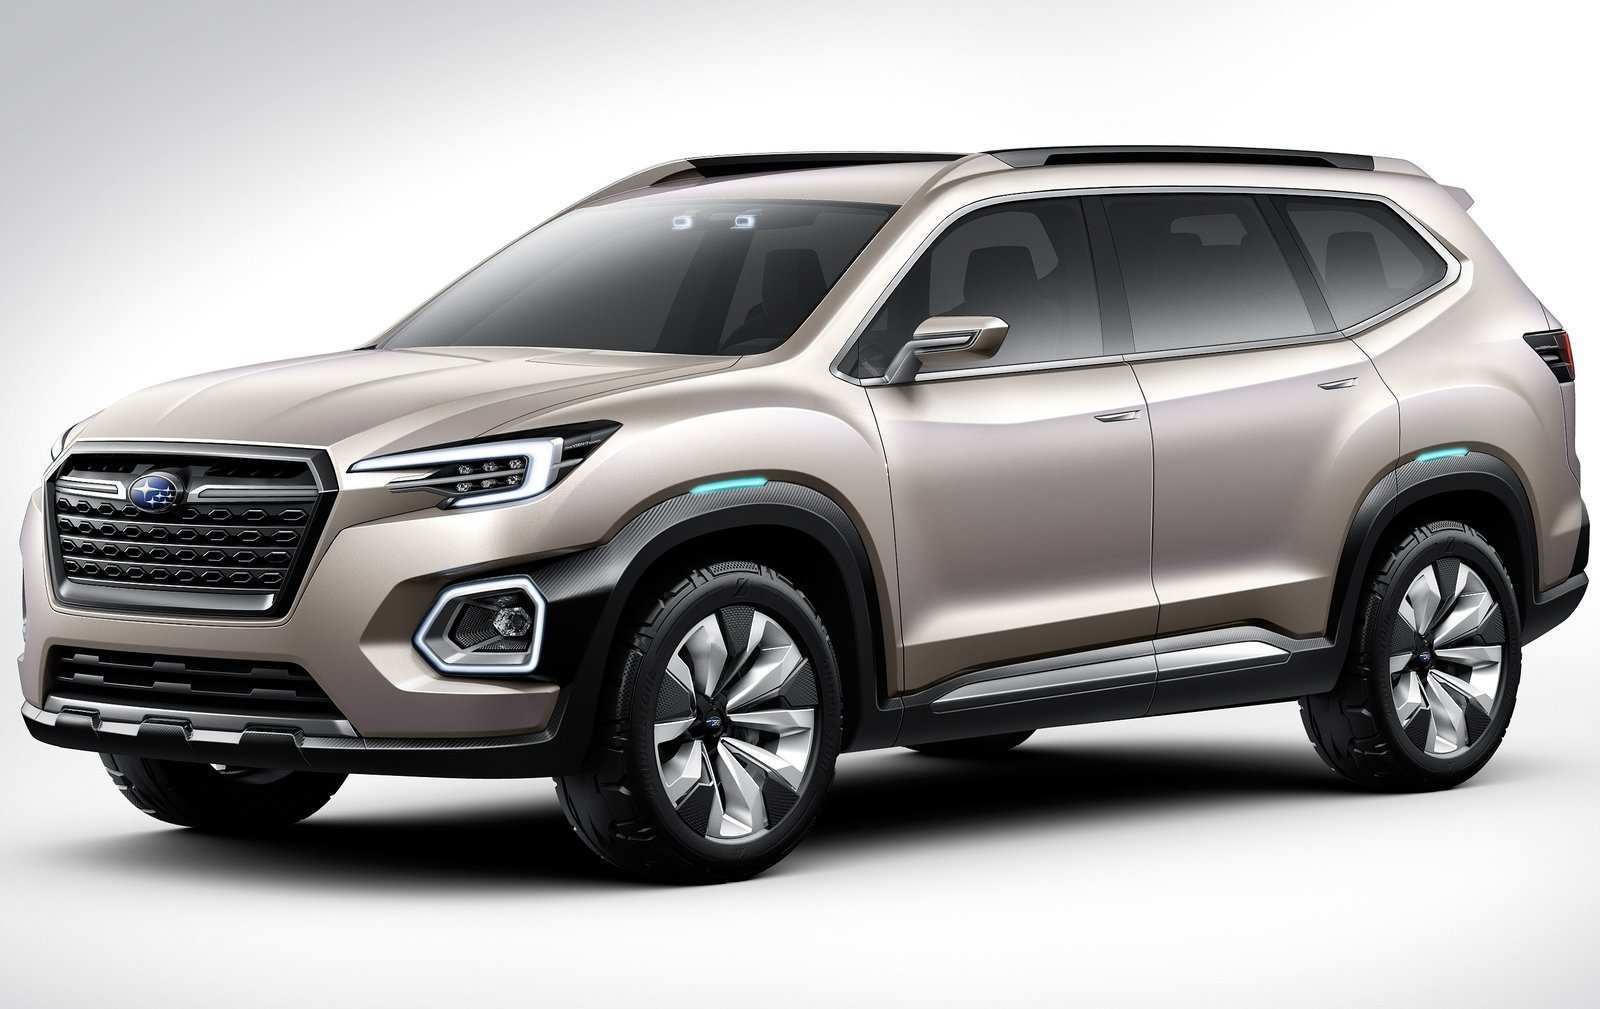 30 All New 2019 Subaru 7 Seater Review And Release Date